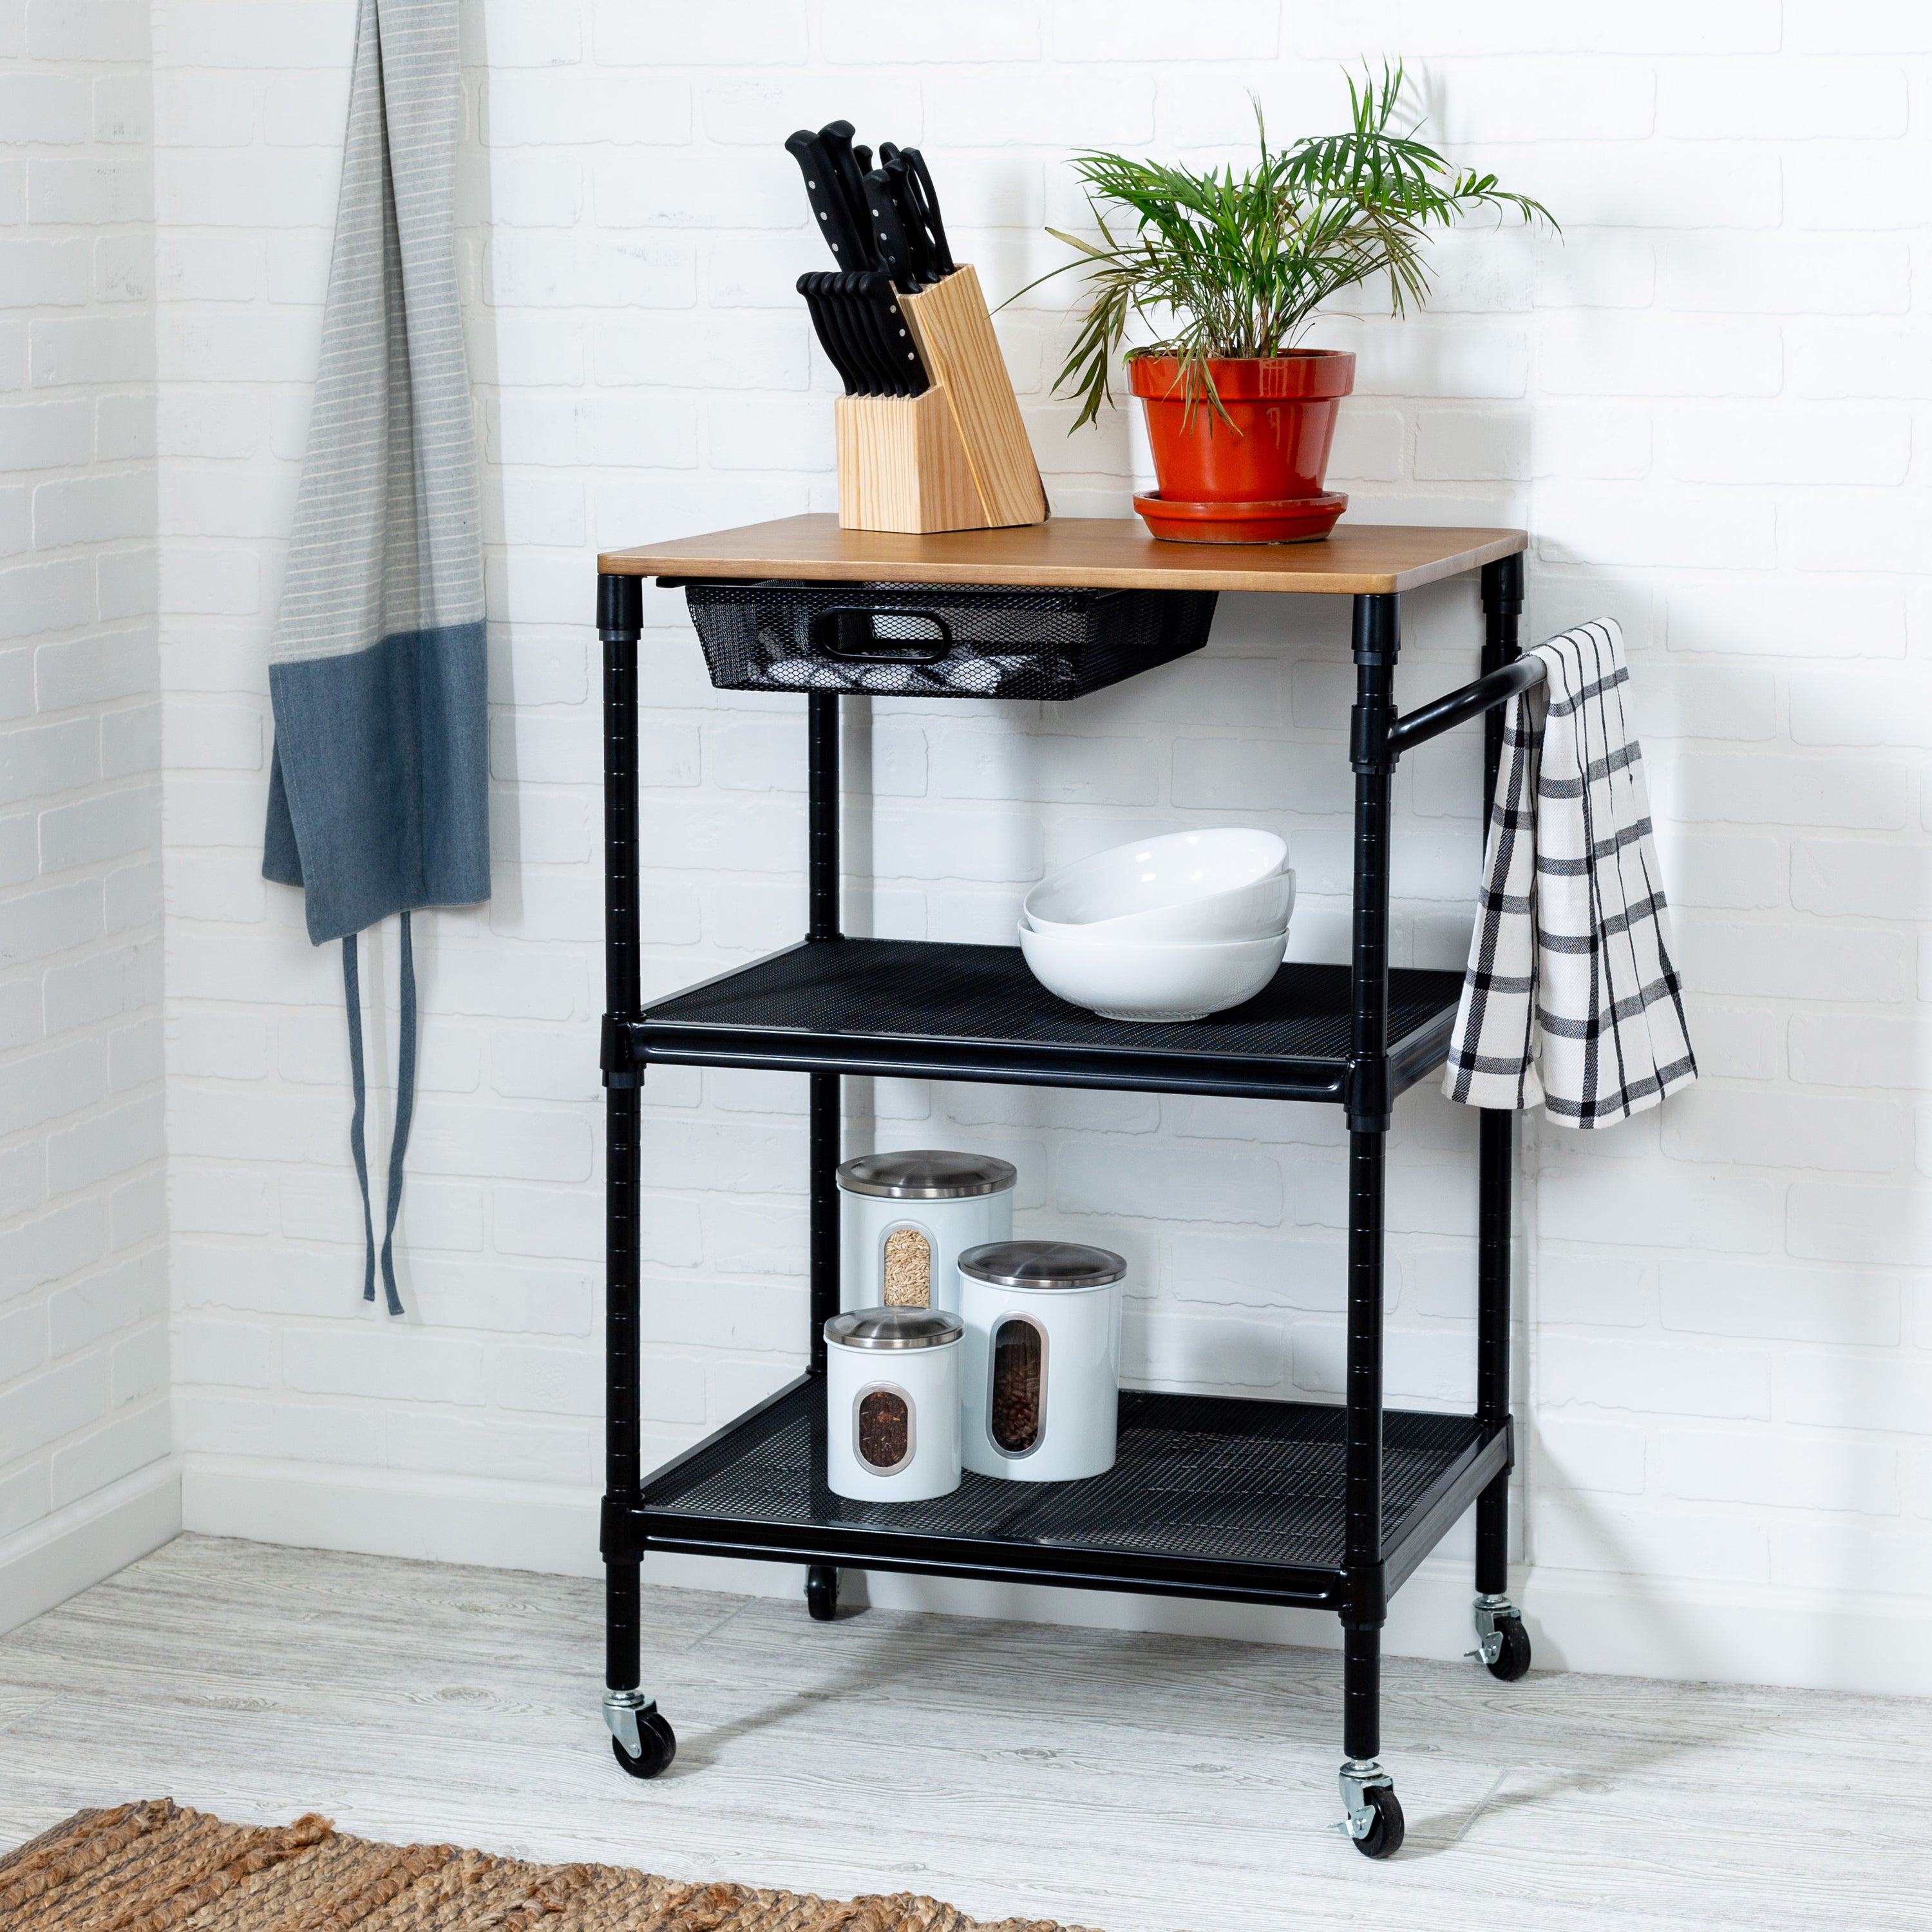 36 Inch Kitchen Storage Cart With Wheels Drawers And Handle